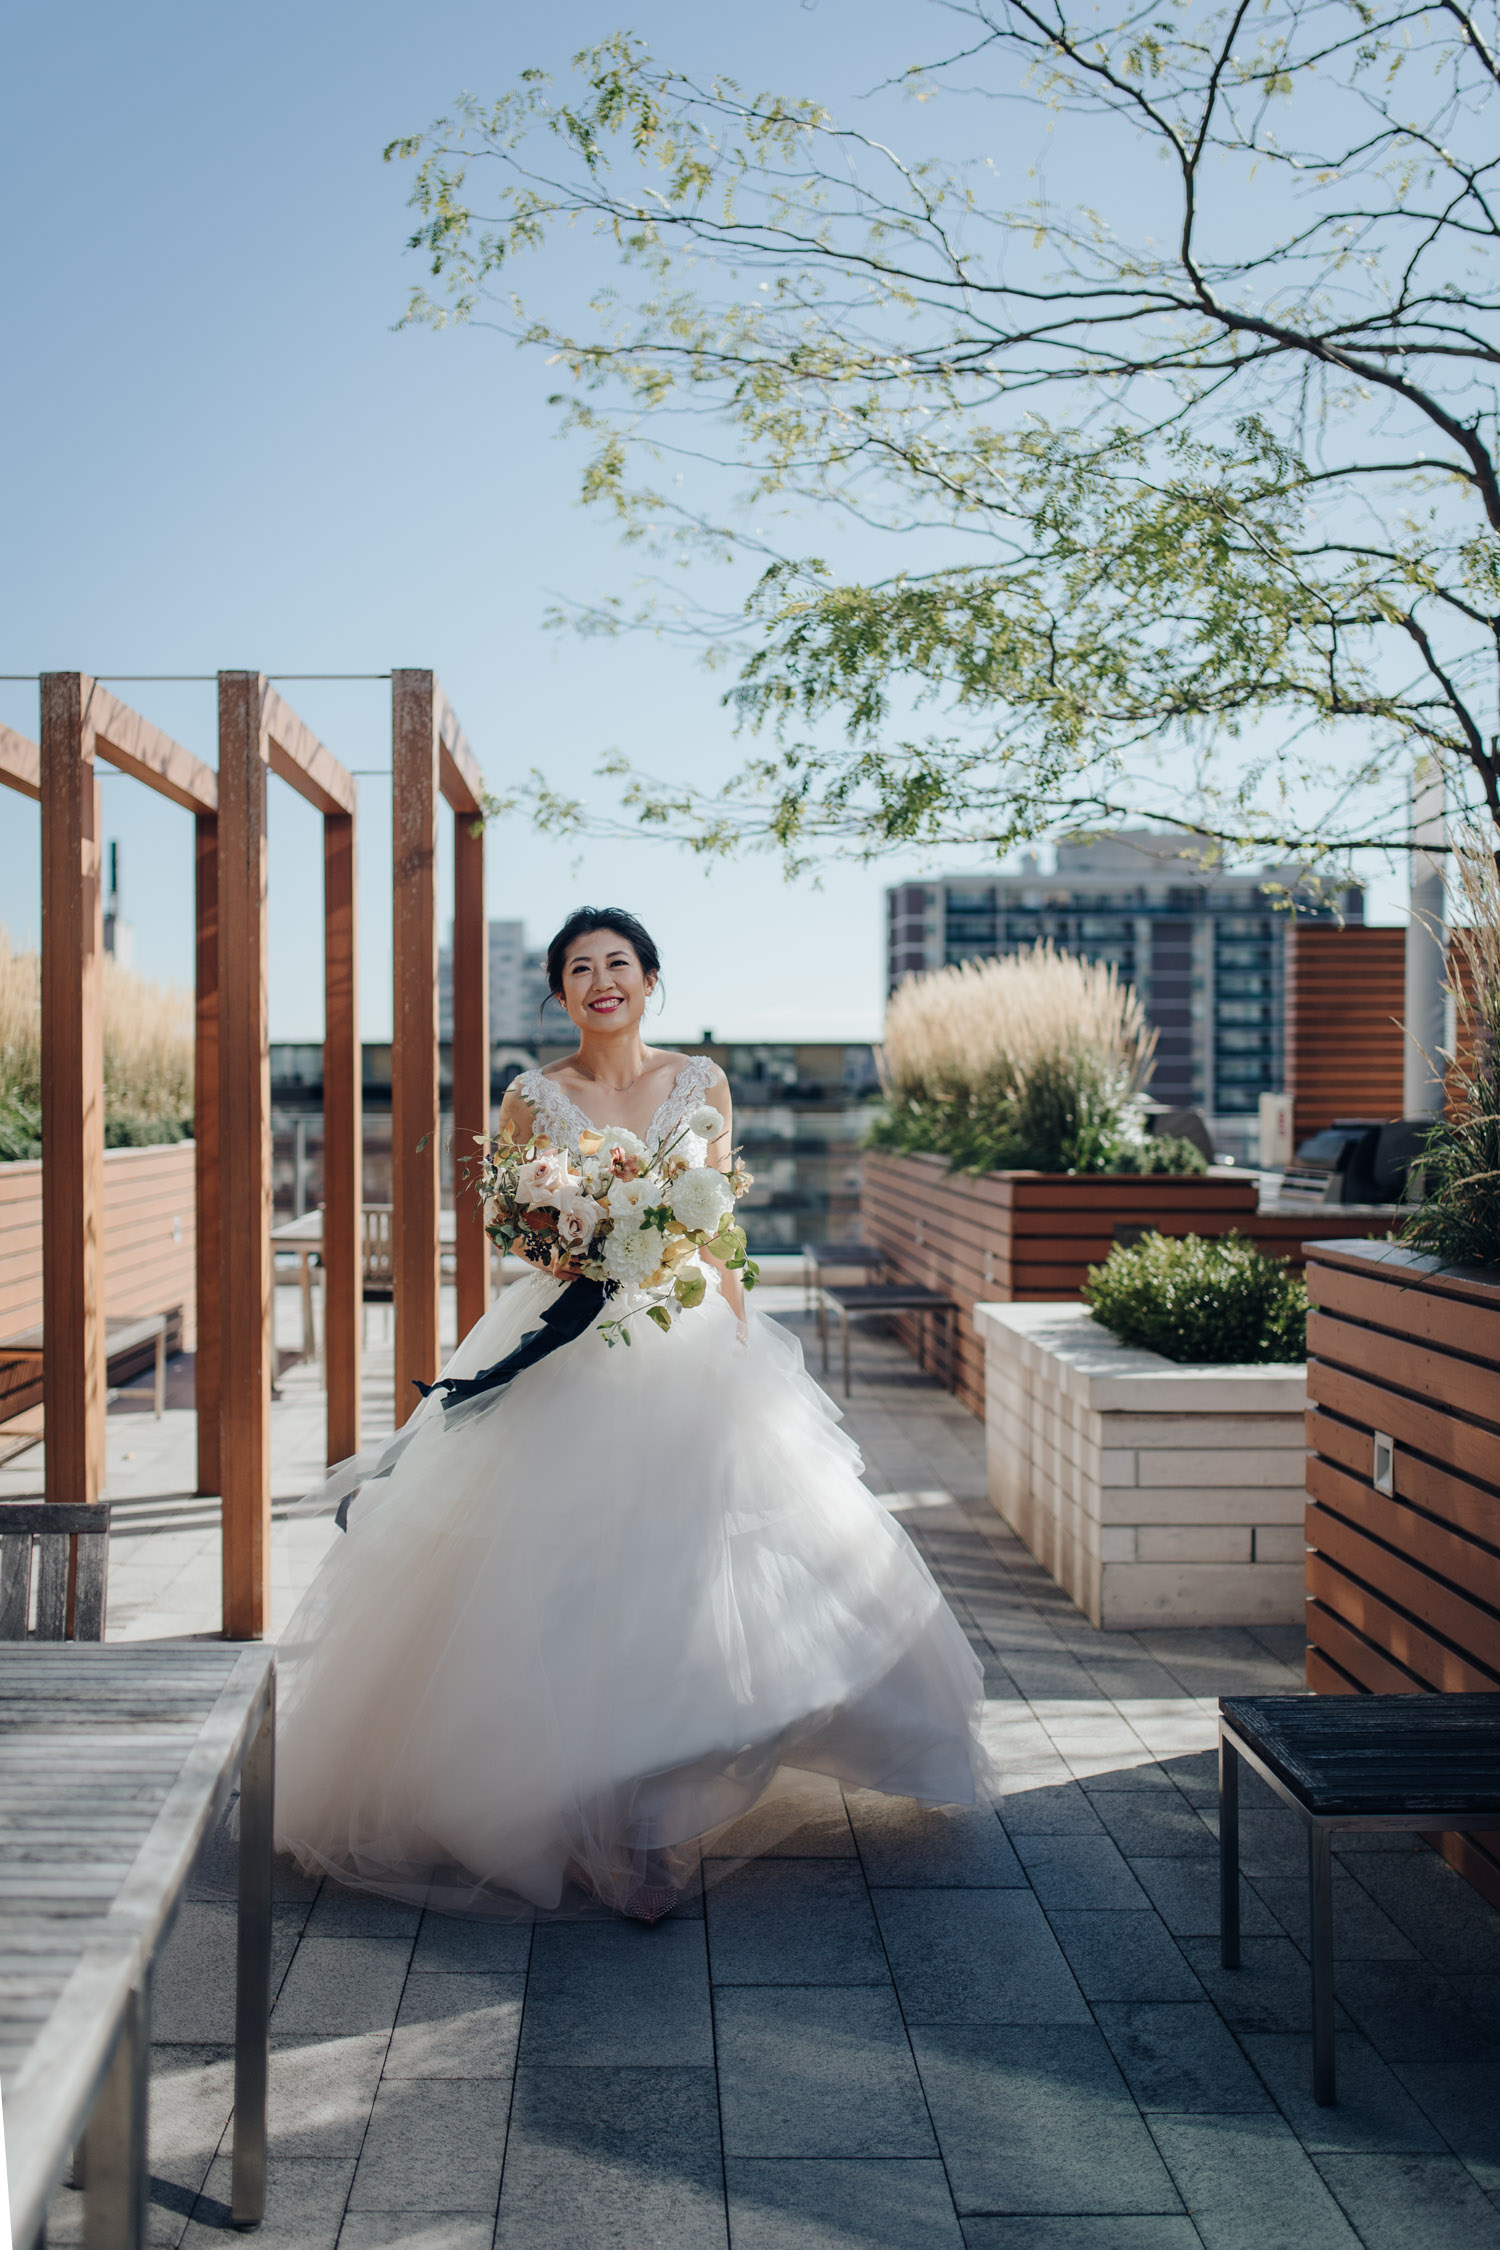 Toronto Colette grand cafe Wedding First Look Bride Alone